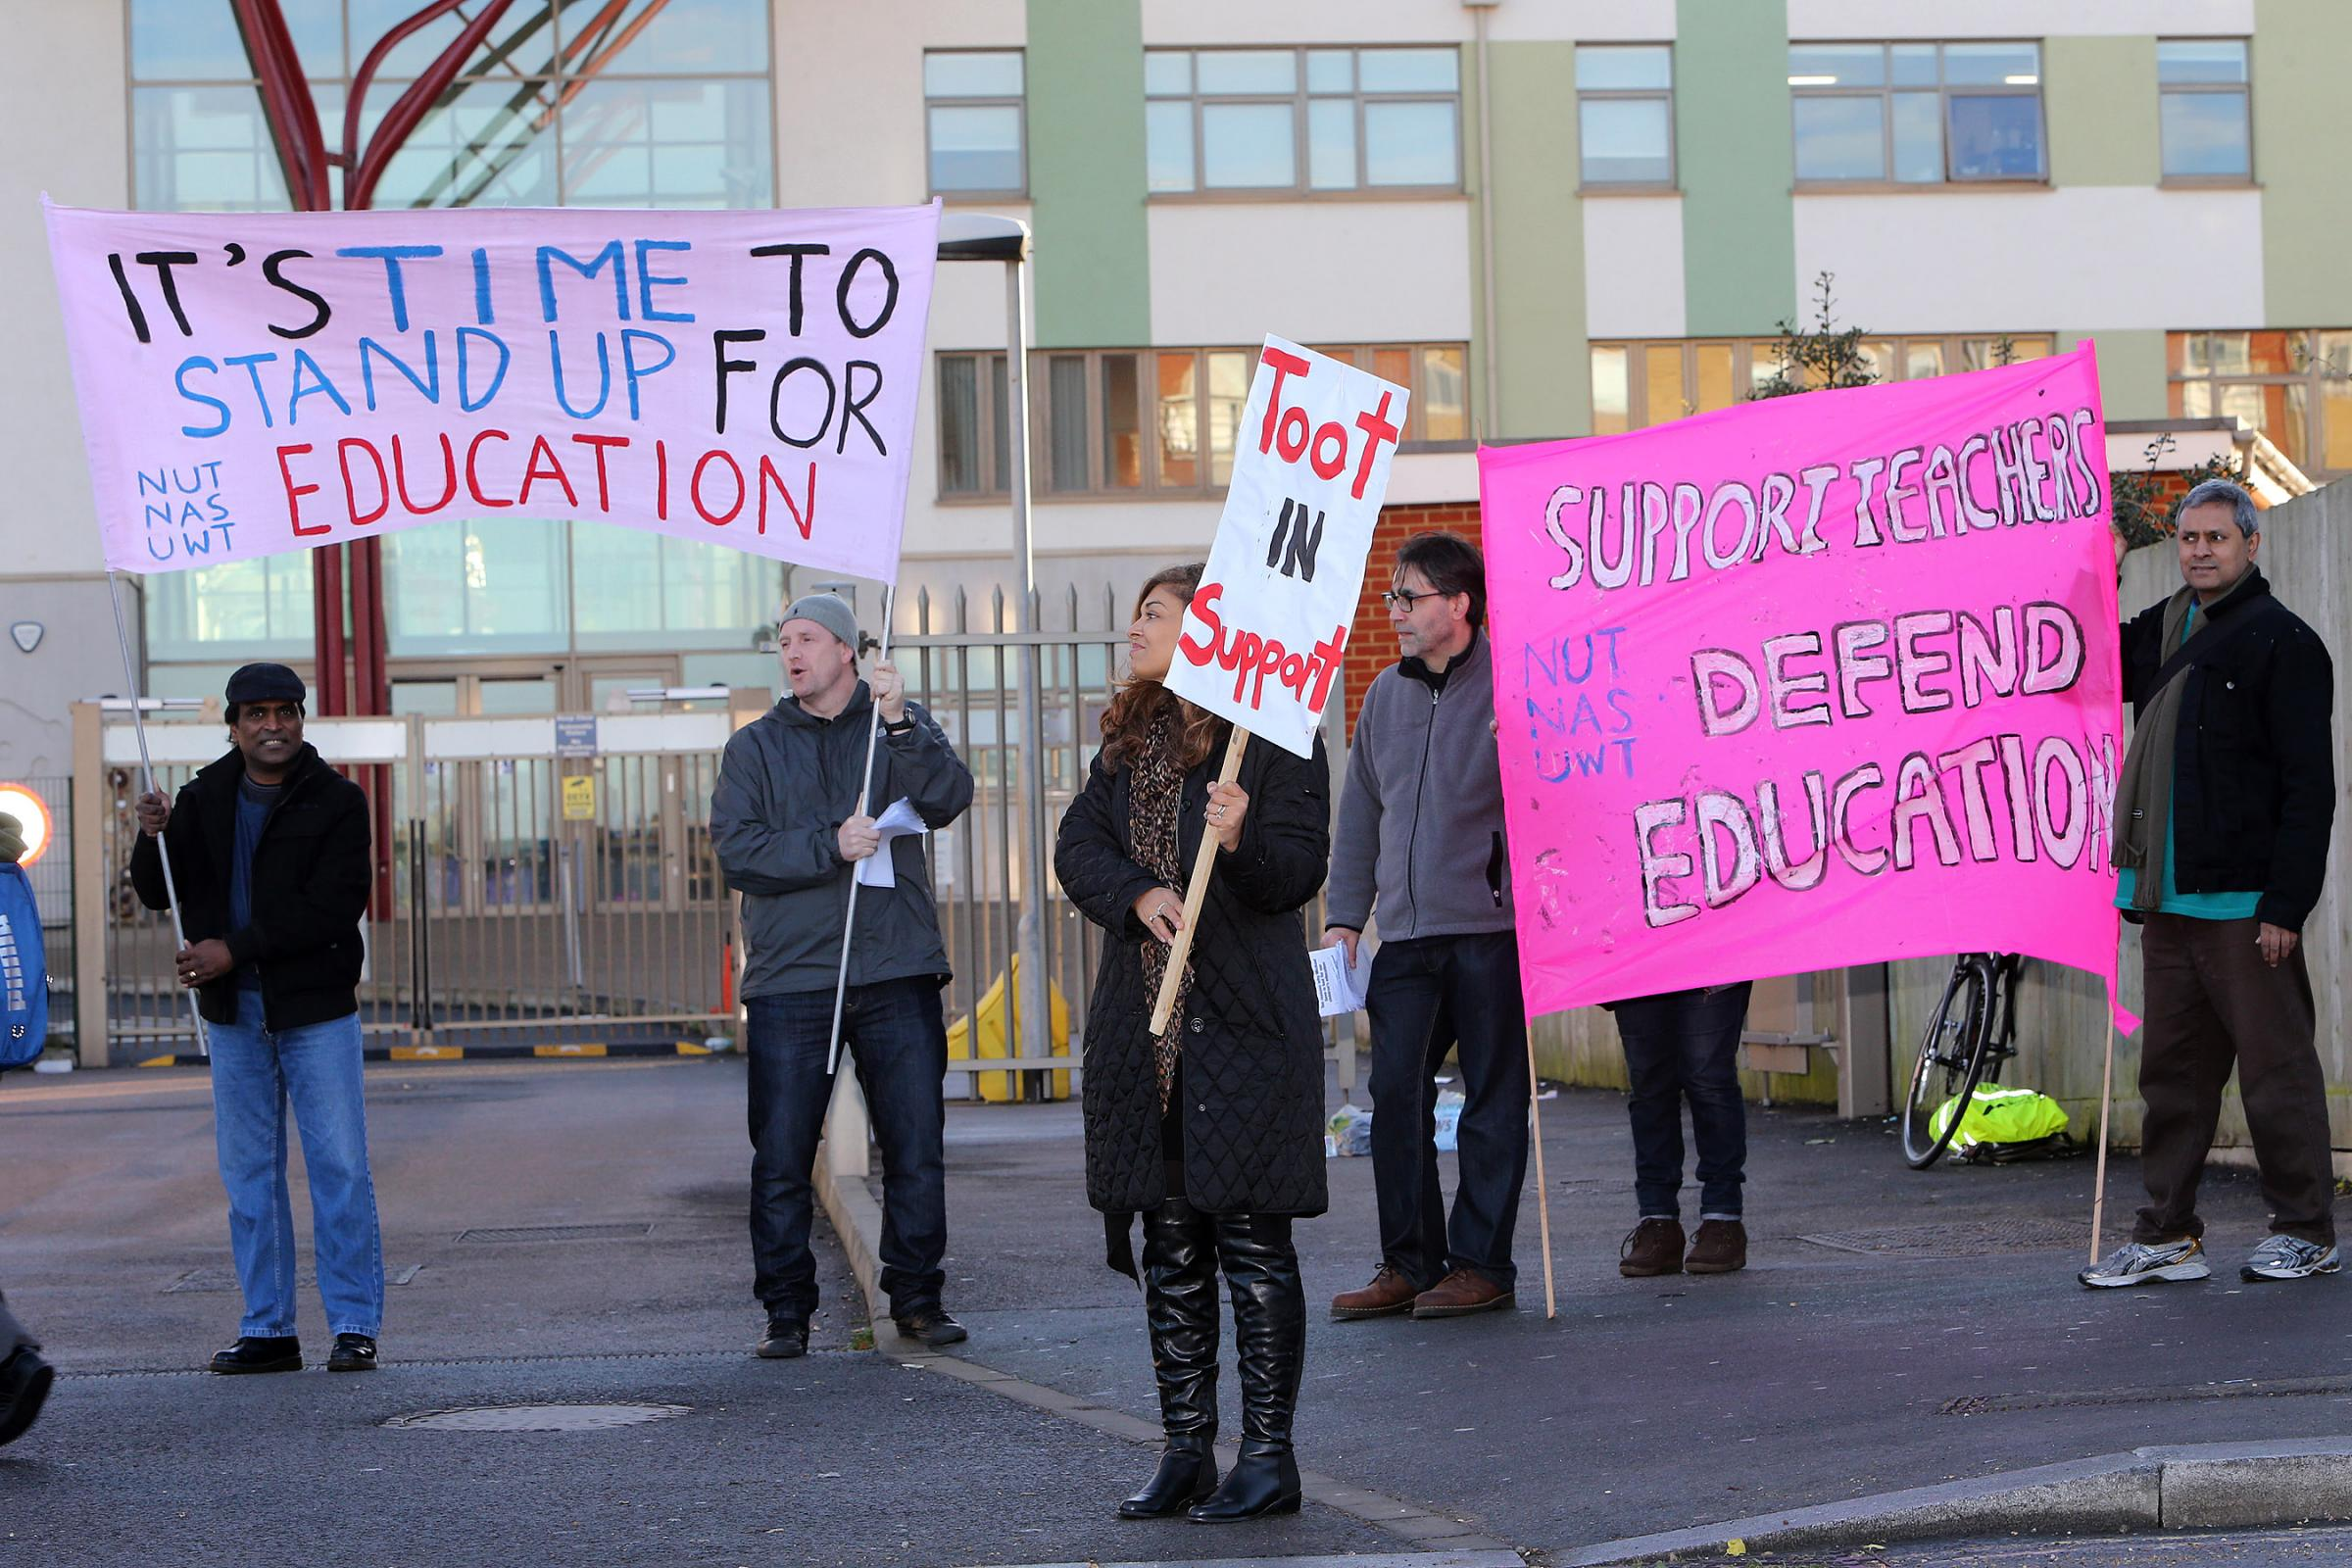 The strike has been called by the National Union of Teachers (NUT) over pay.